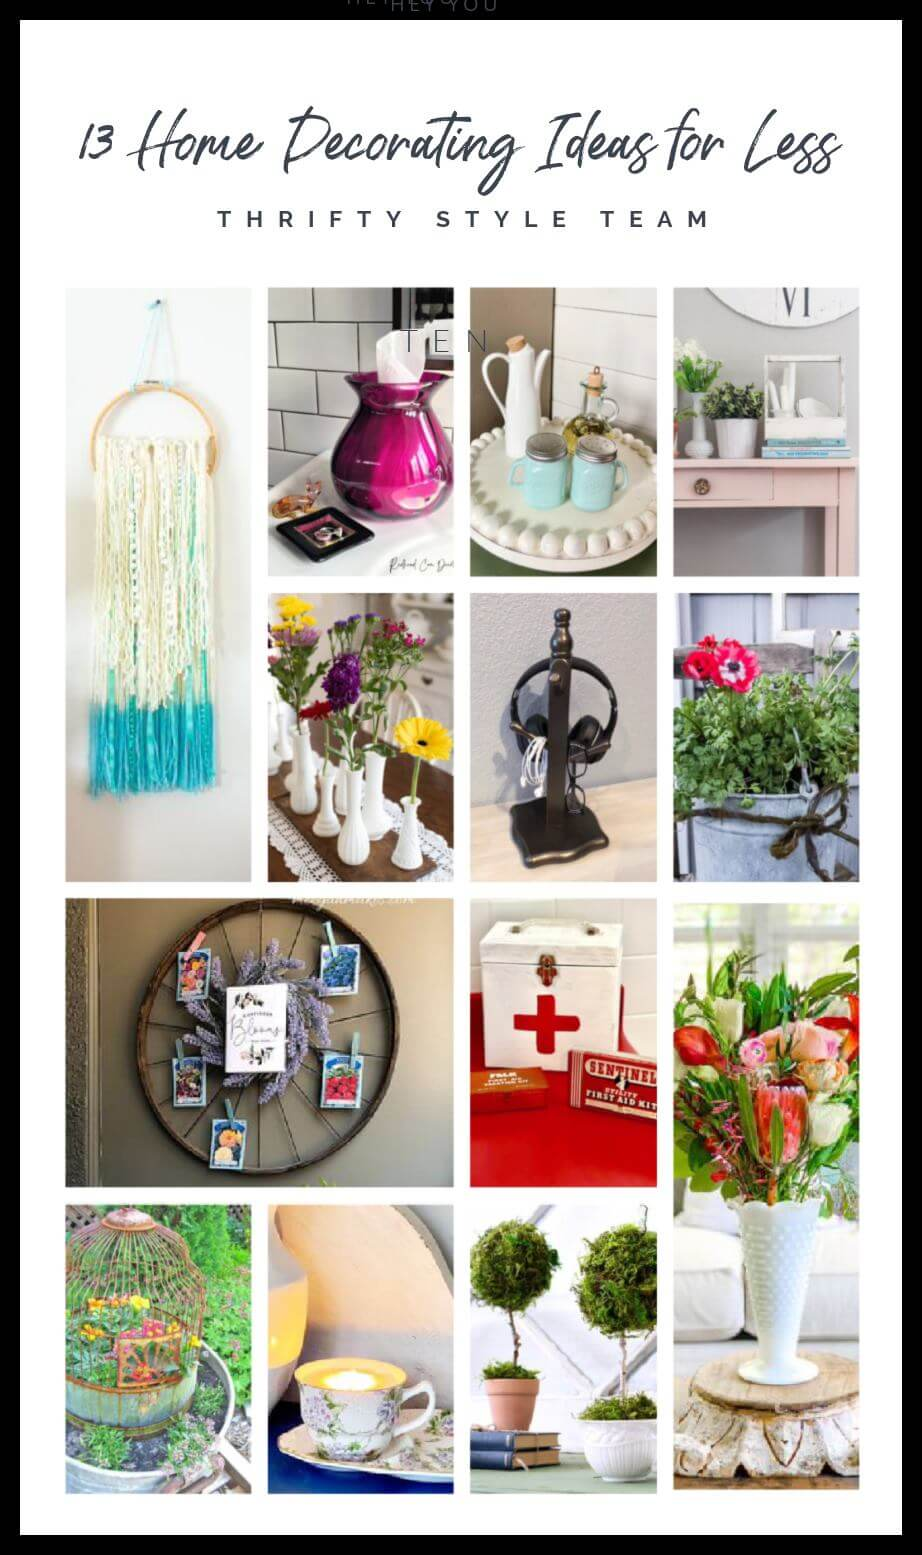 13 Thrifty Decorating ideas for your home!